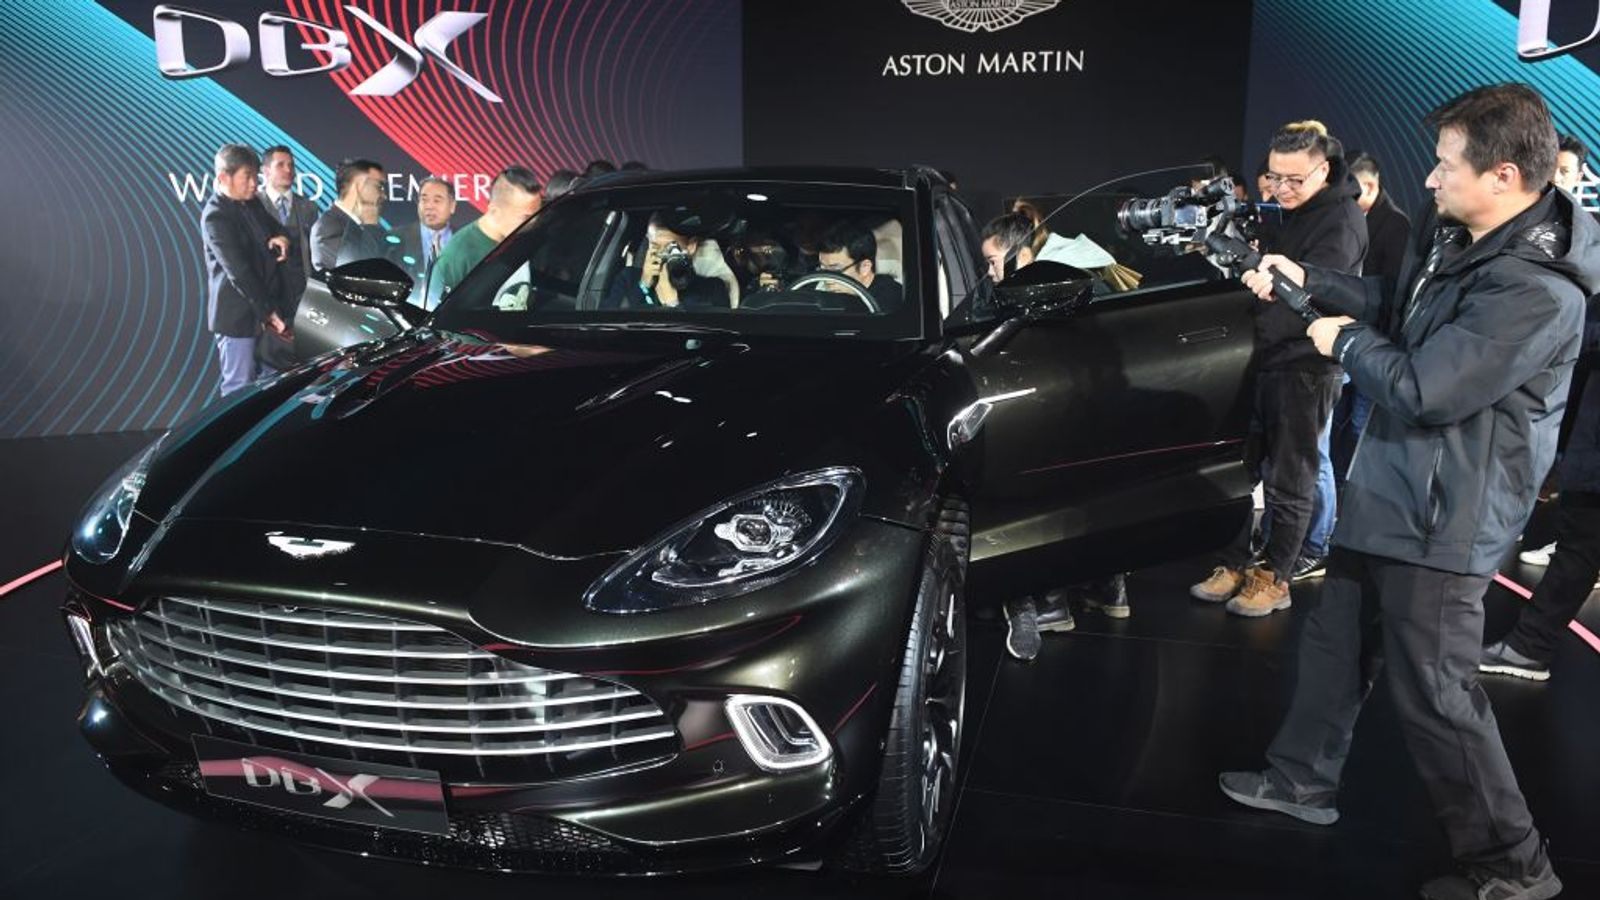 Aston Martin steers Mercedes partnership to boost recovery